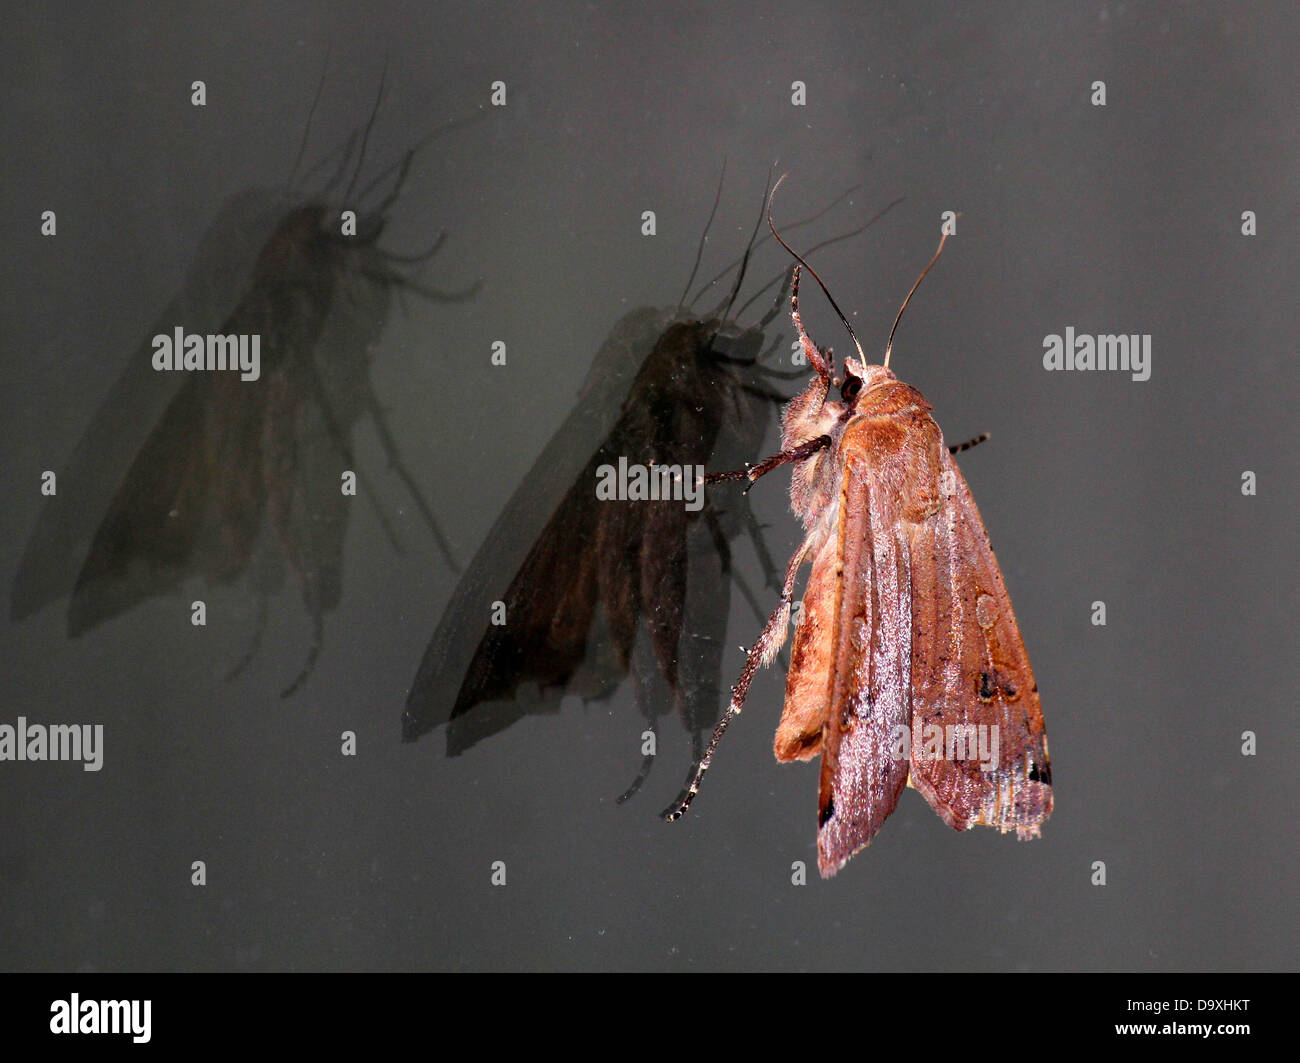 Large Yellow Underwing (Noctua pronuba) moth with wings  partly opened and reflections and shadows on a window pane - Stock Image